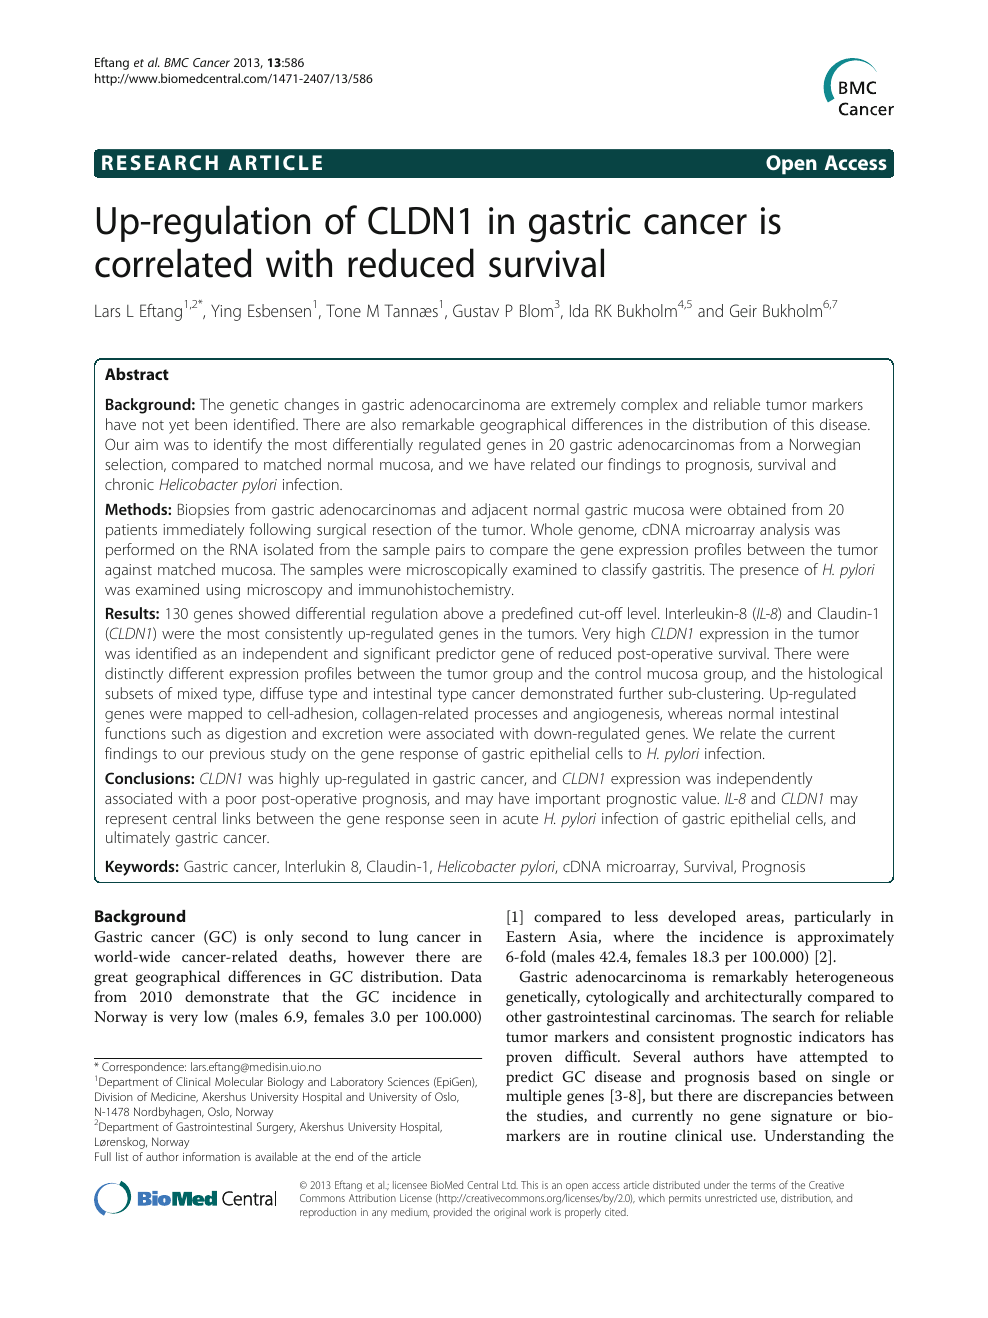 gastric cancer article